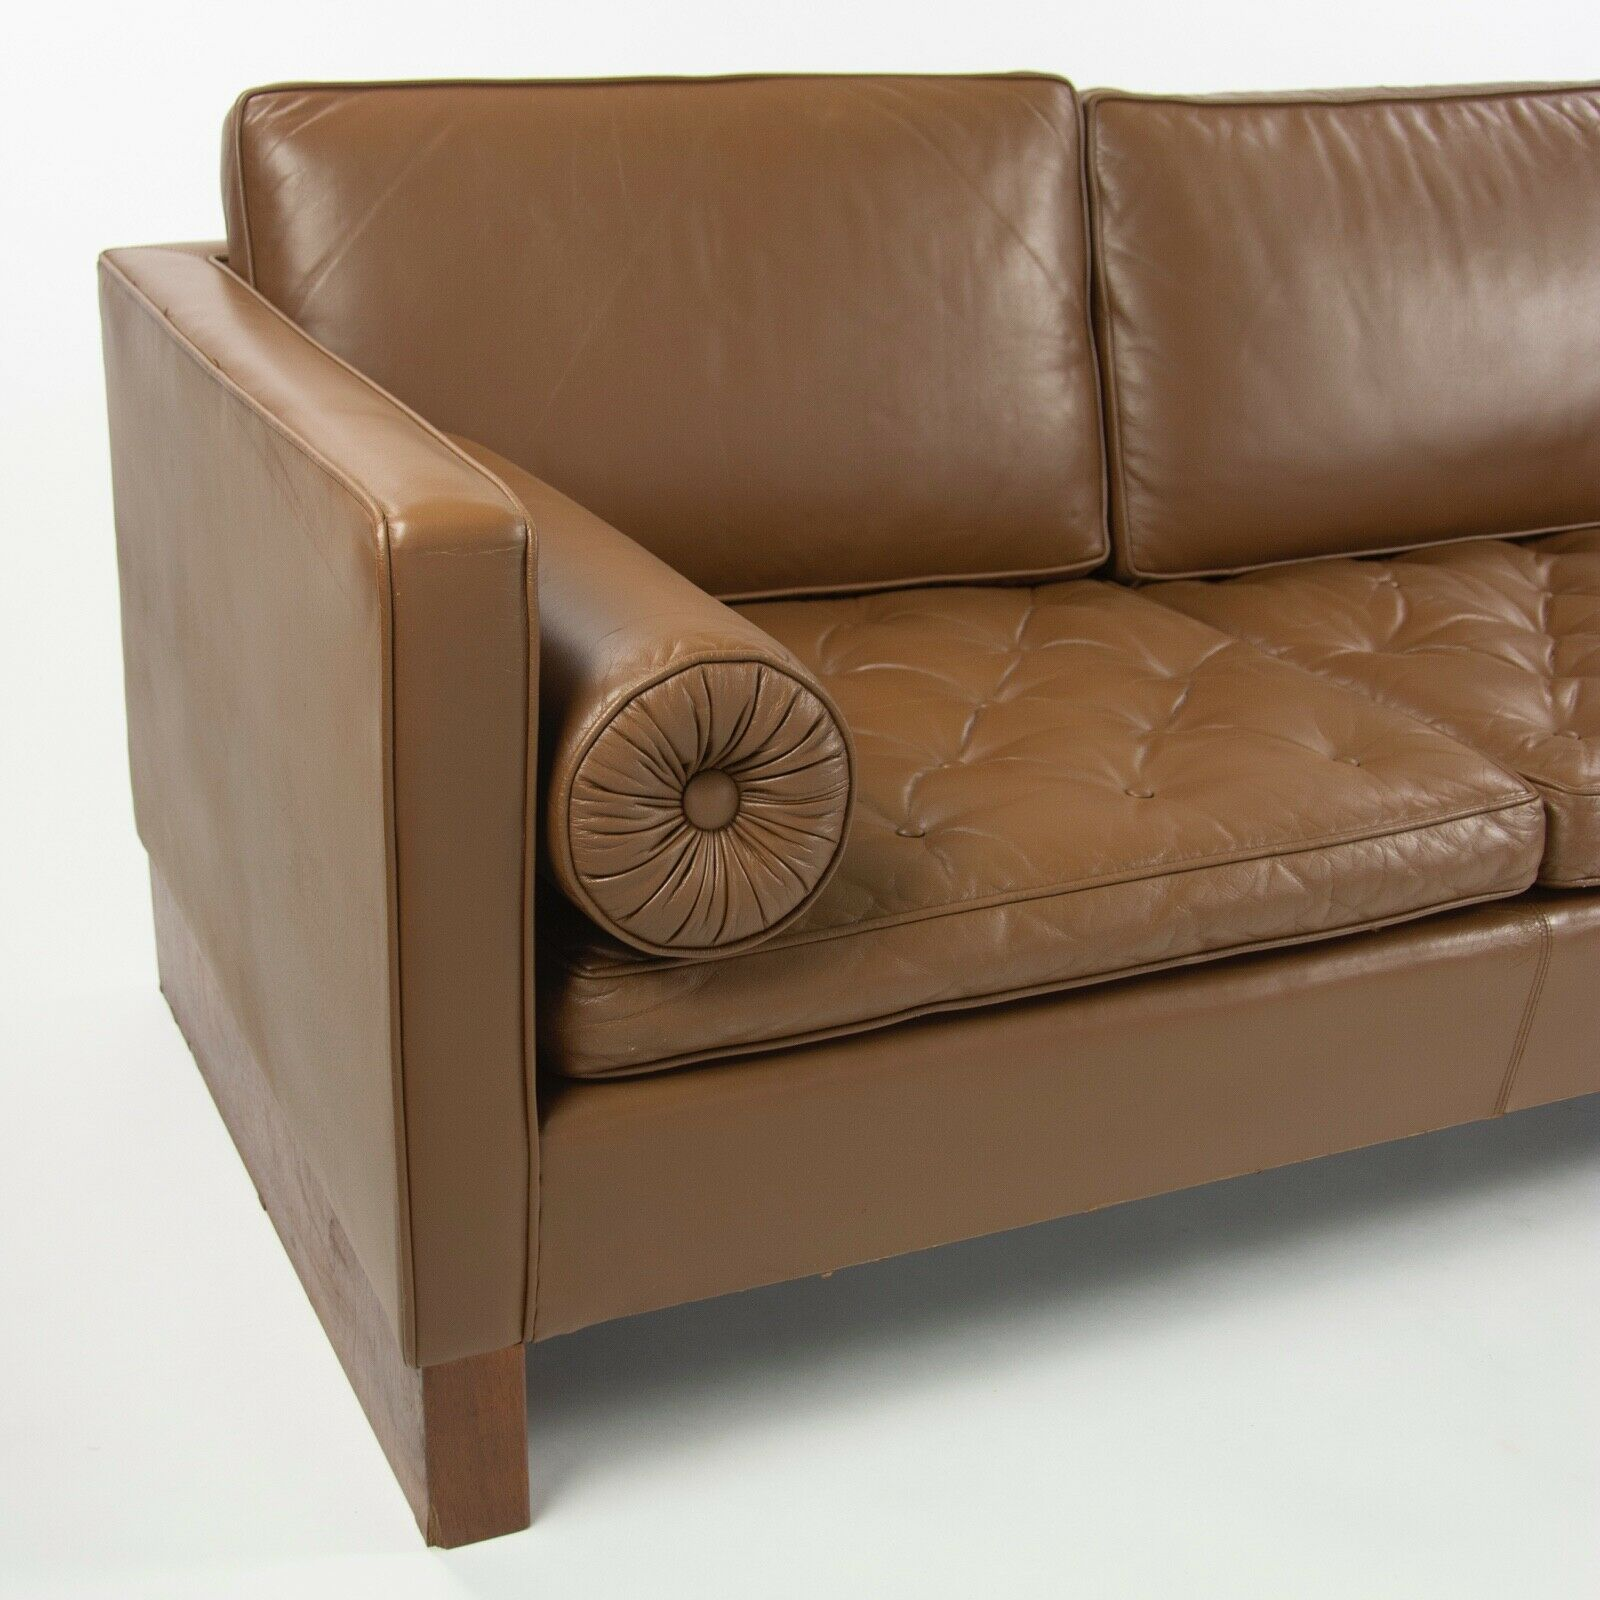 1960s Mies Van Der Rohe for Knoll International Brown Leather Three Seat Sofa